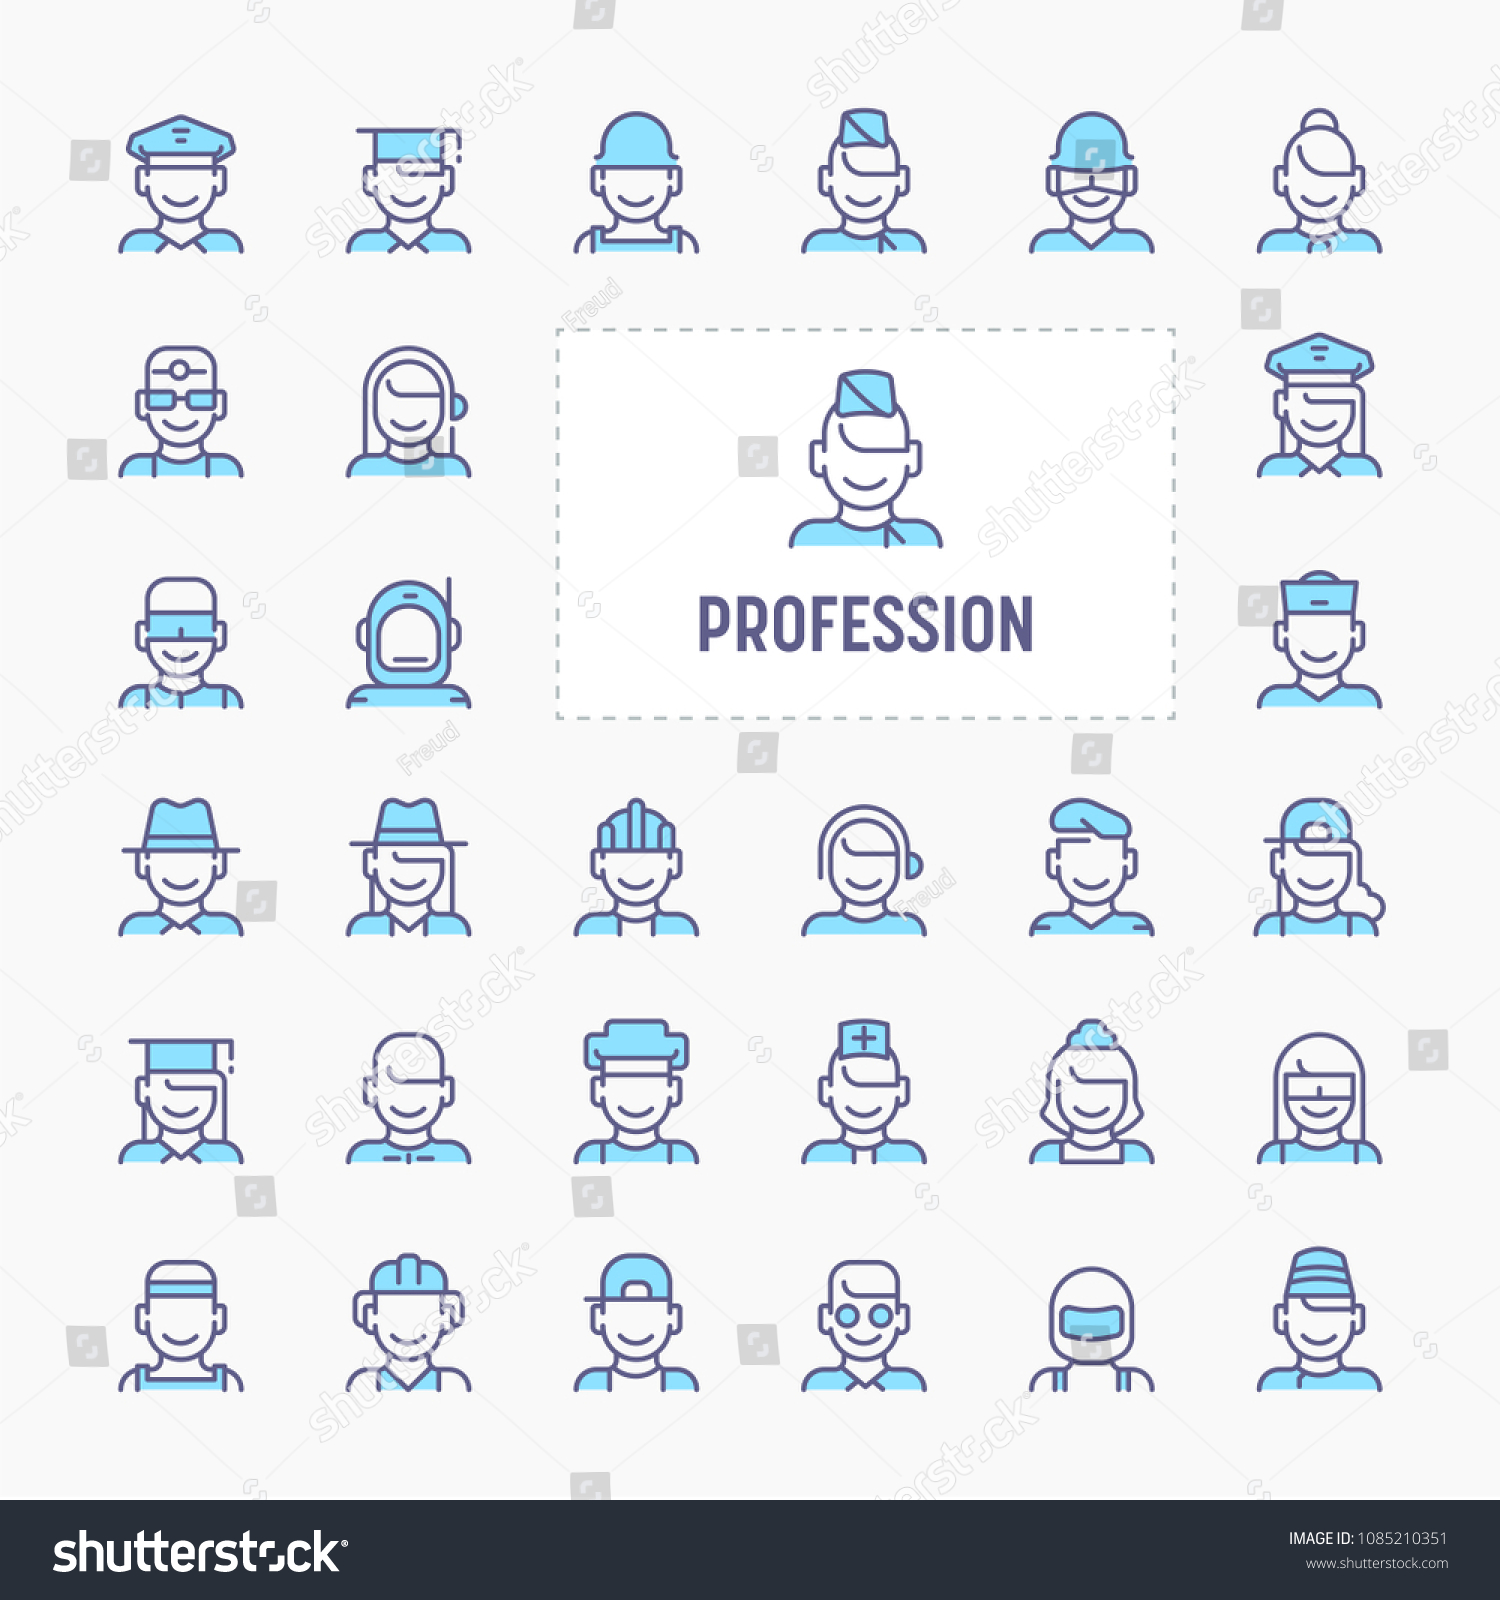 profession occupation employment thin line website stock vector